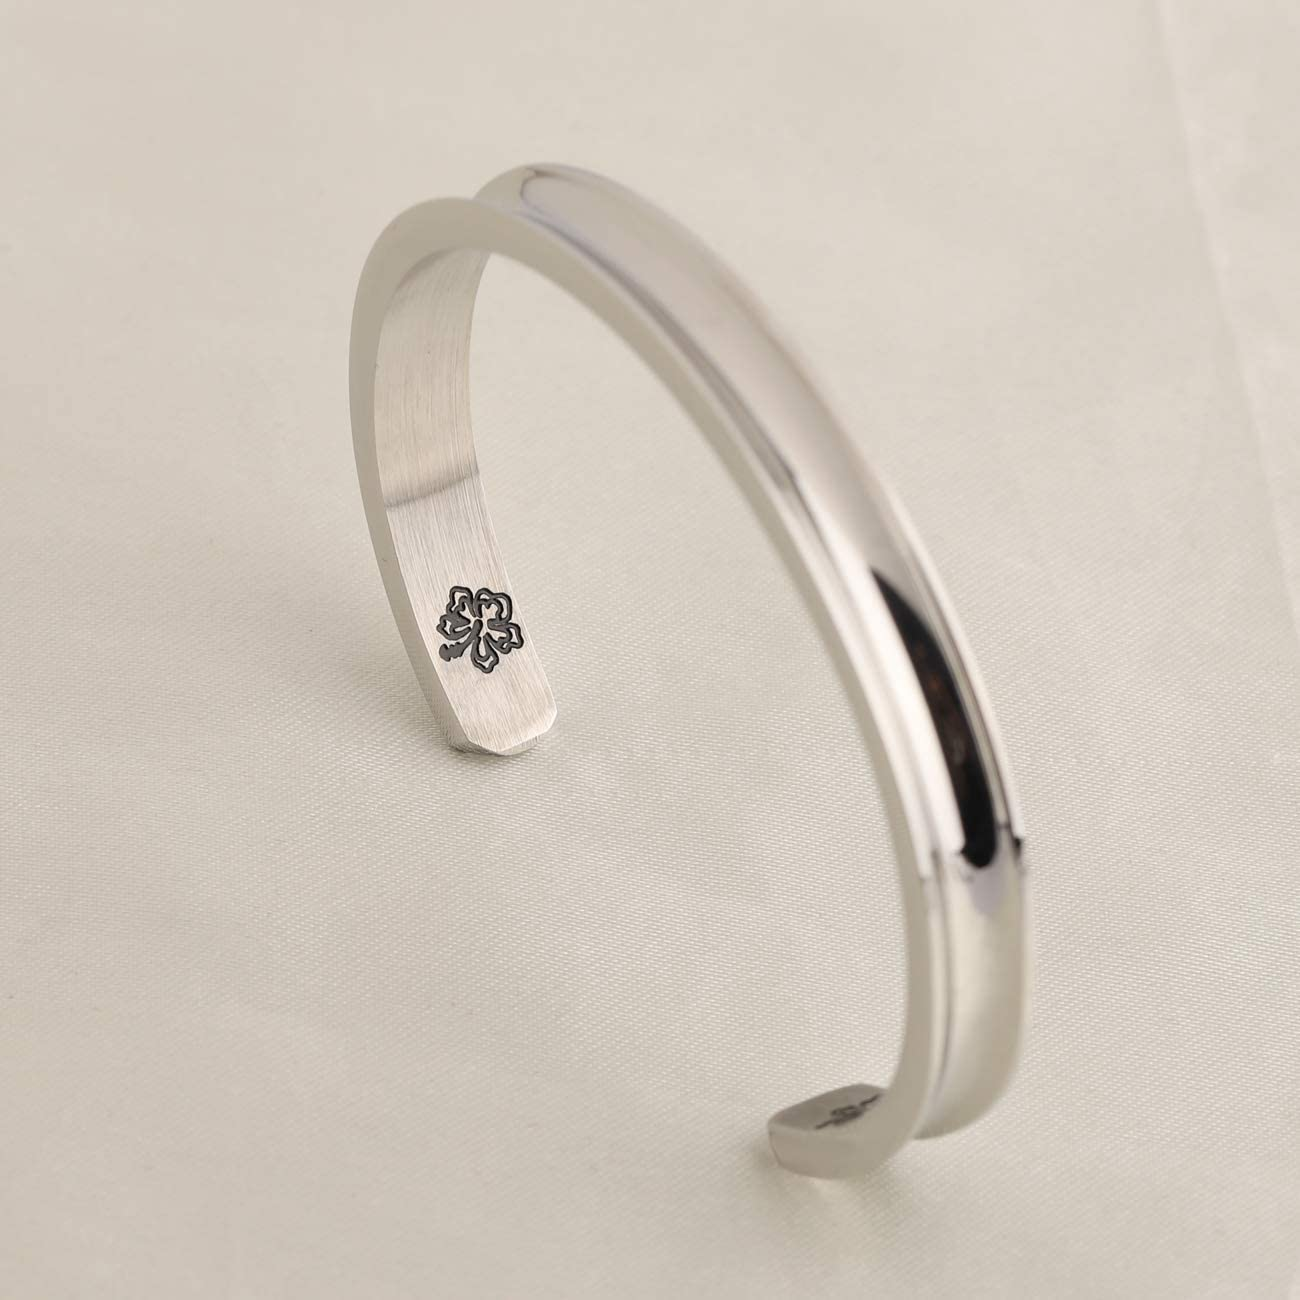 WUSUANED Ohana Means Family Hibiscus Hair Tie Grooved Cuff Bangle Bracelet Hawaii Jewelry Gift for Family Best Friends